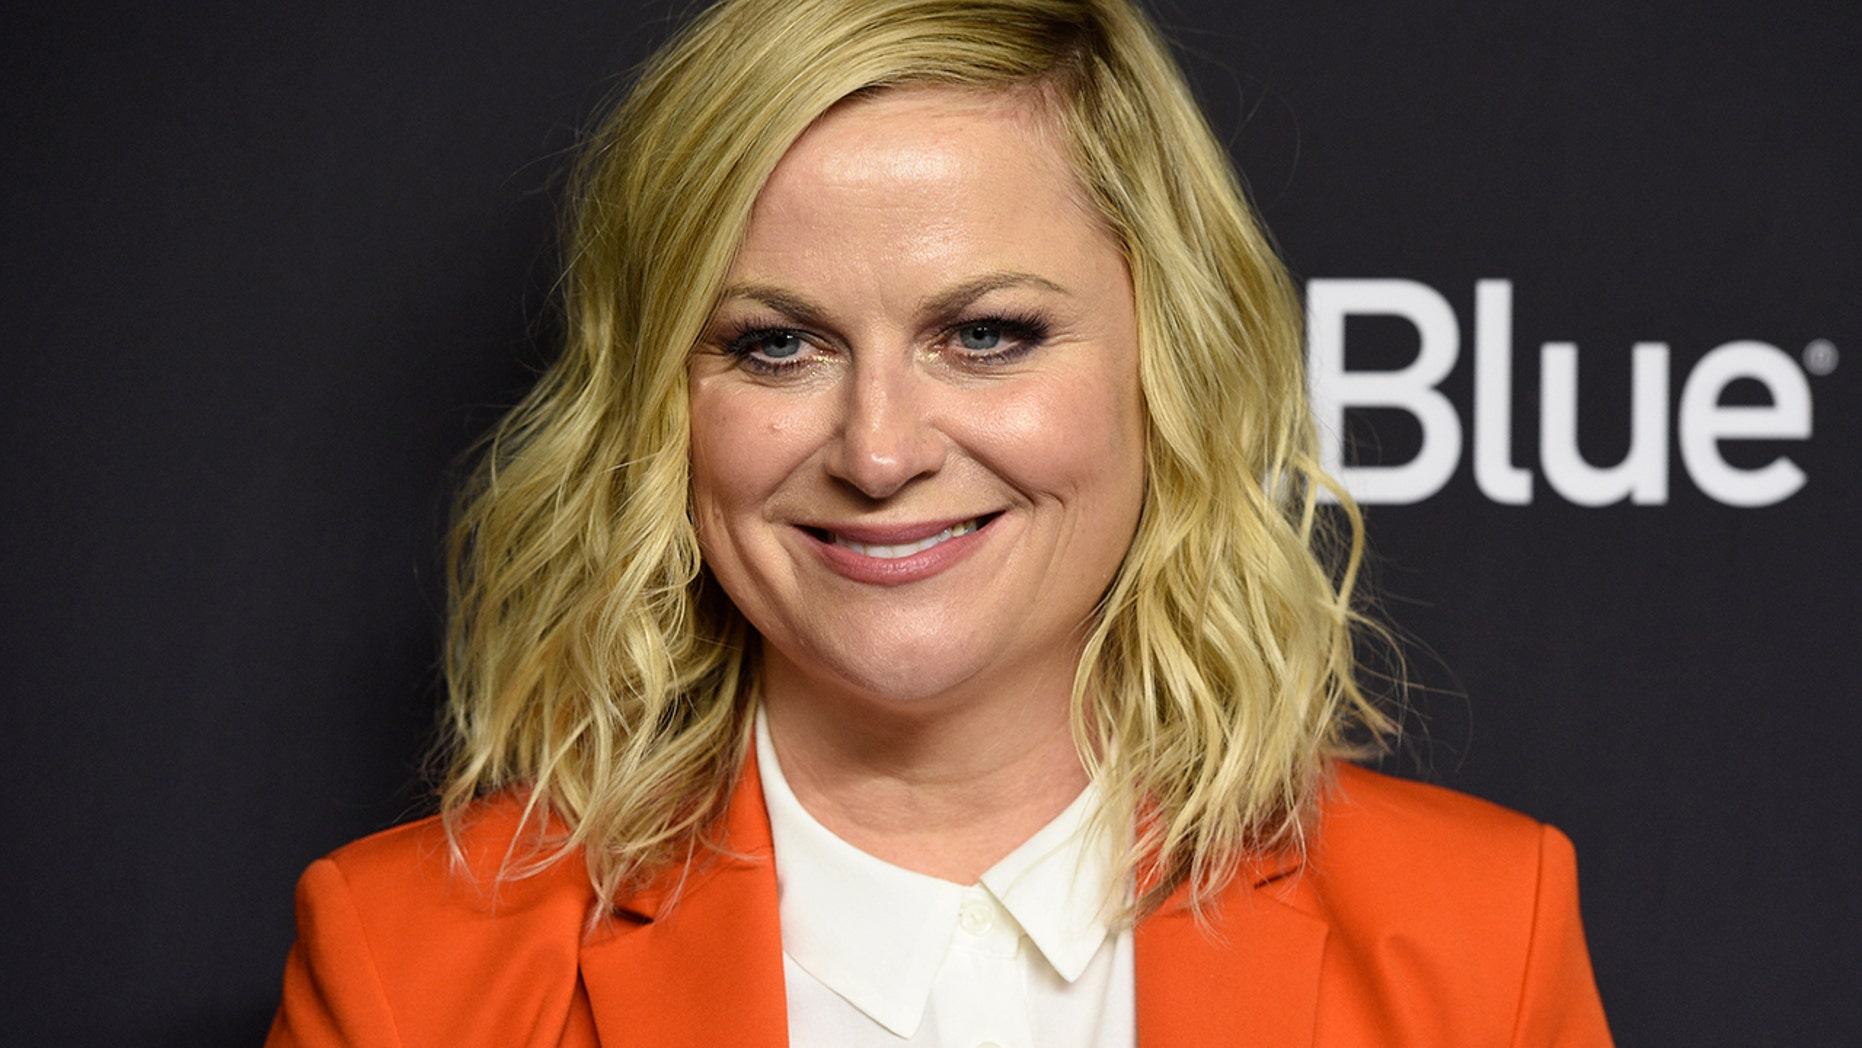 Amy Poehler reflects on 10-year anniversary of 'Parks and